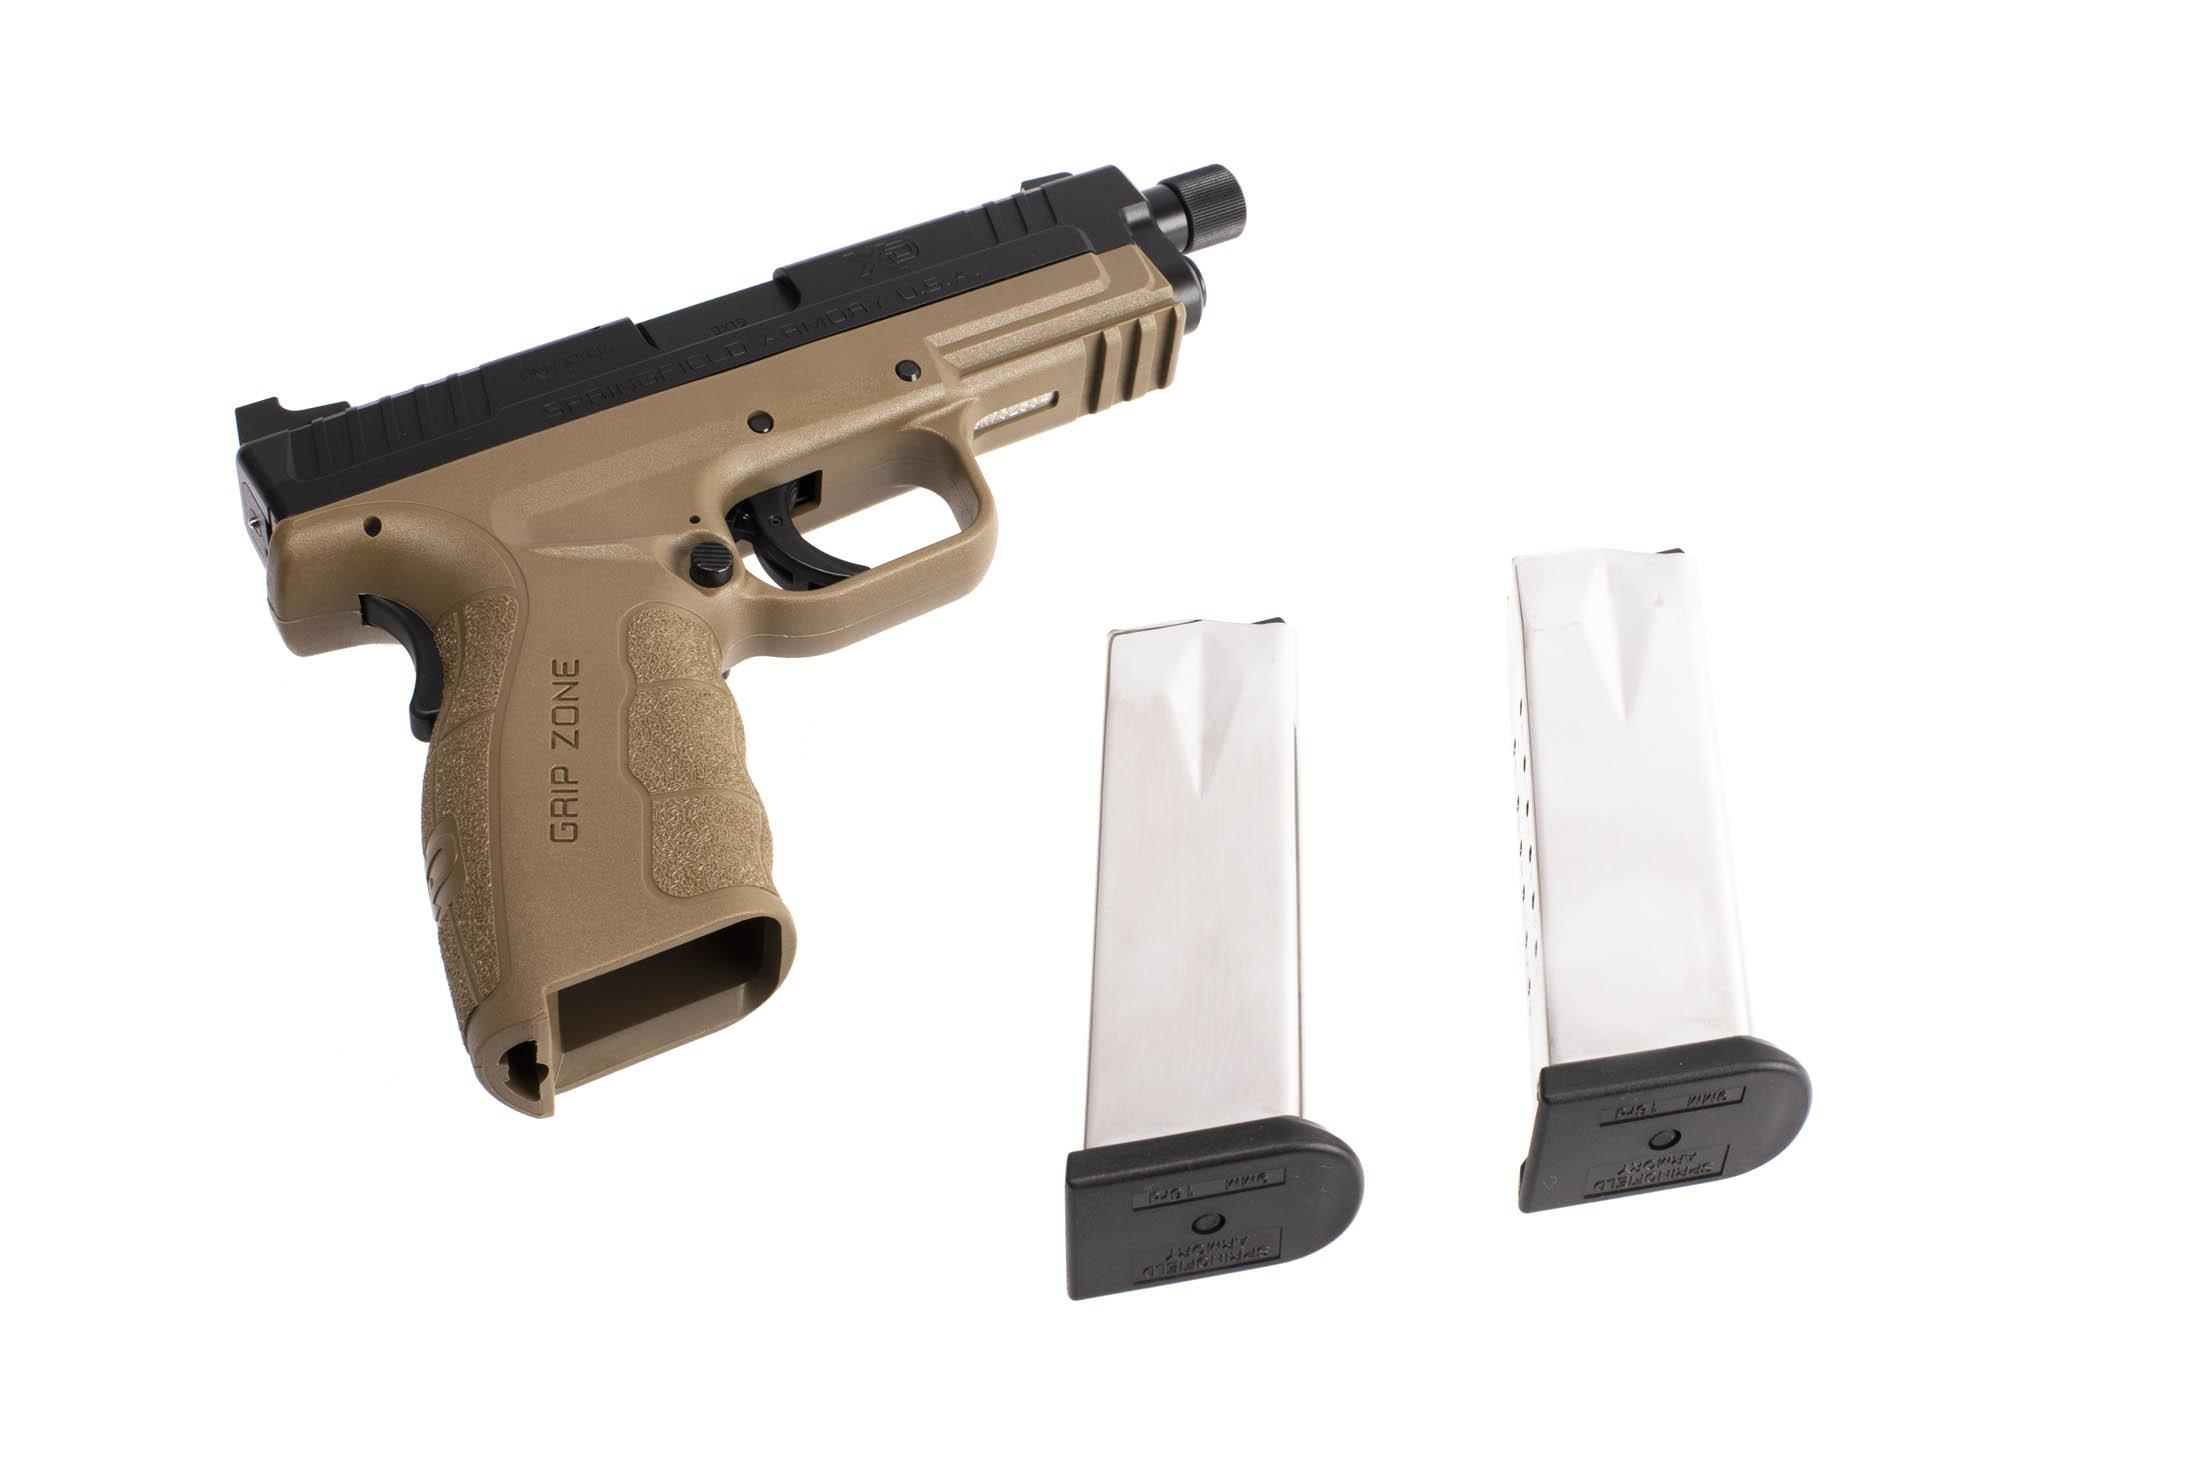 The Springfield Armory XD MOD.2 is a 9mm Full Size 16 round Handgun with two magazines